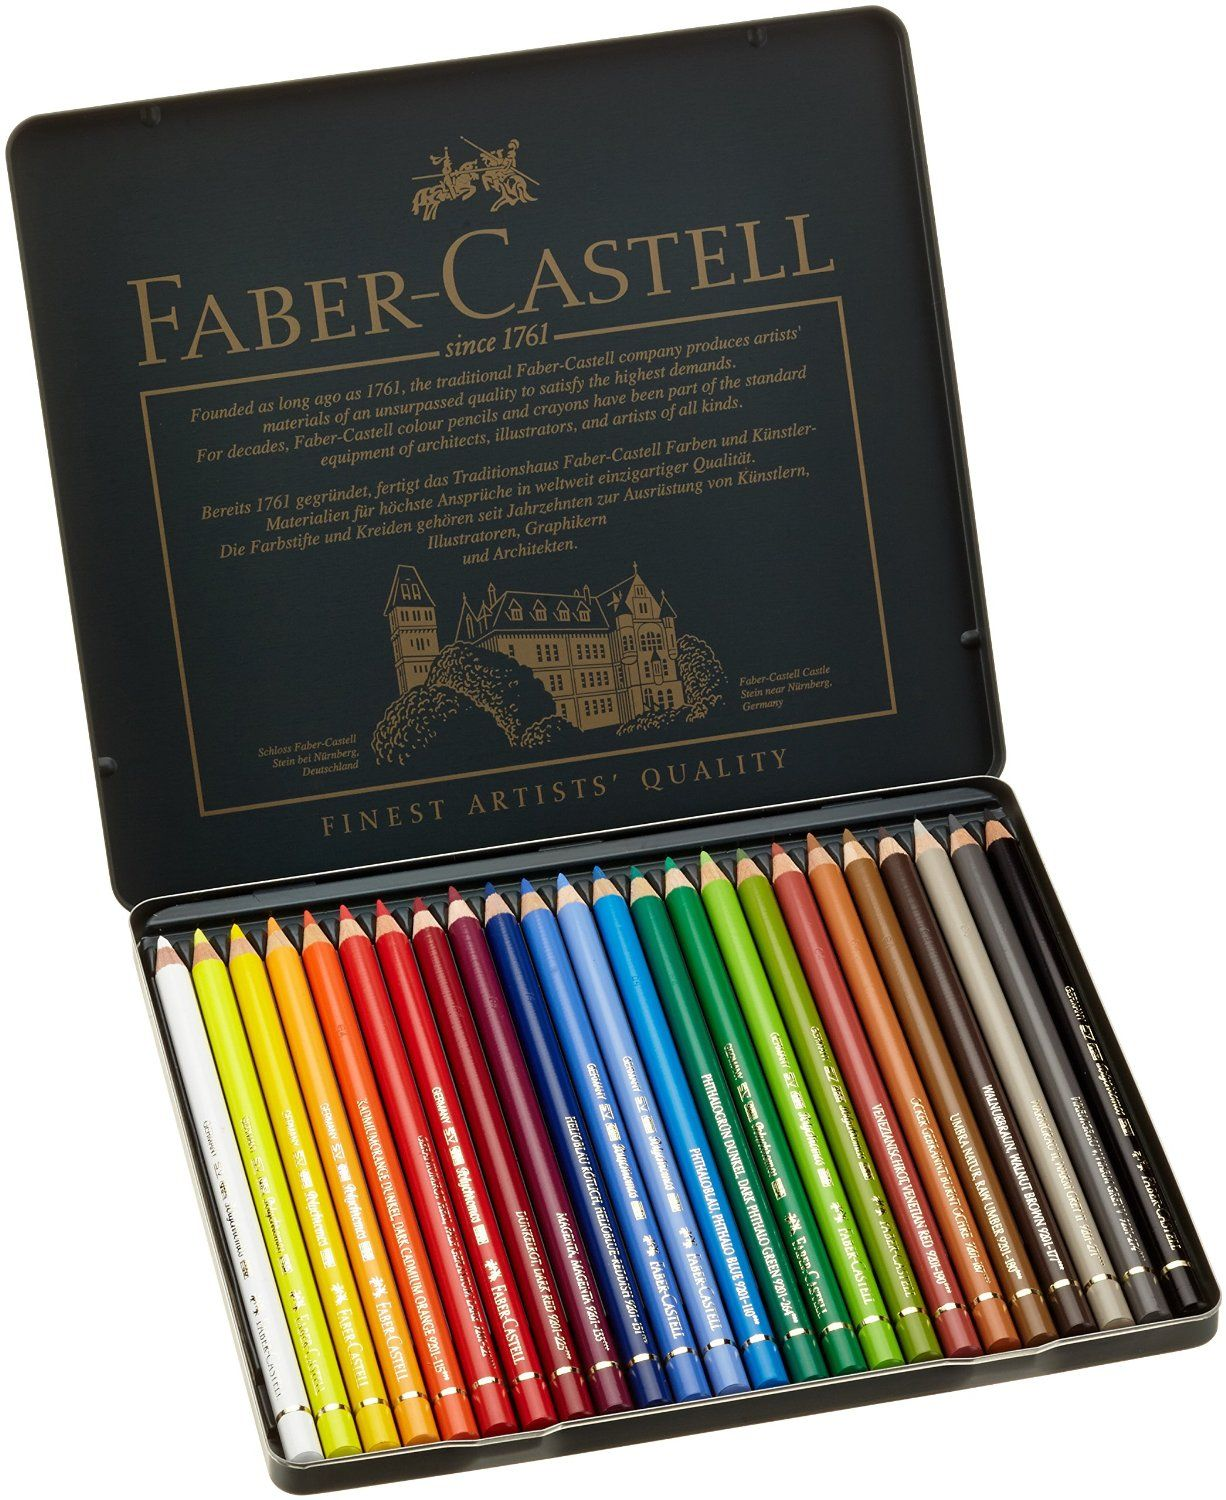 Art colored pencils - Amazon Com Faber Castel 24 Piece Polychromous Colored Pencil Set In Metal Tin